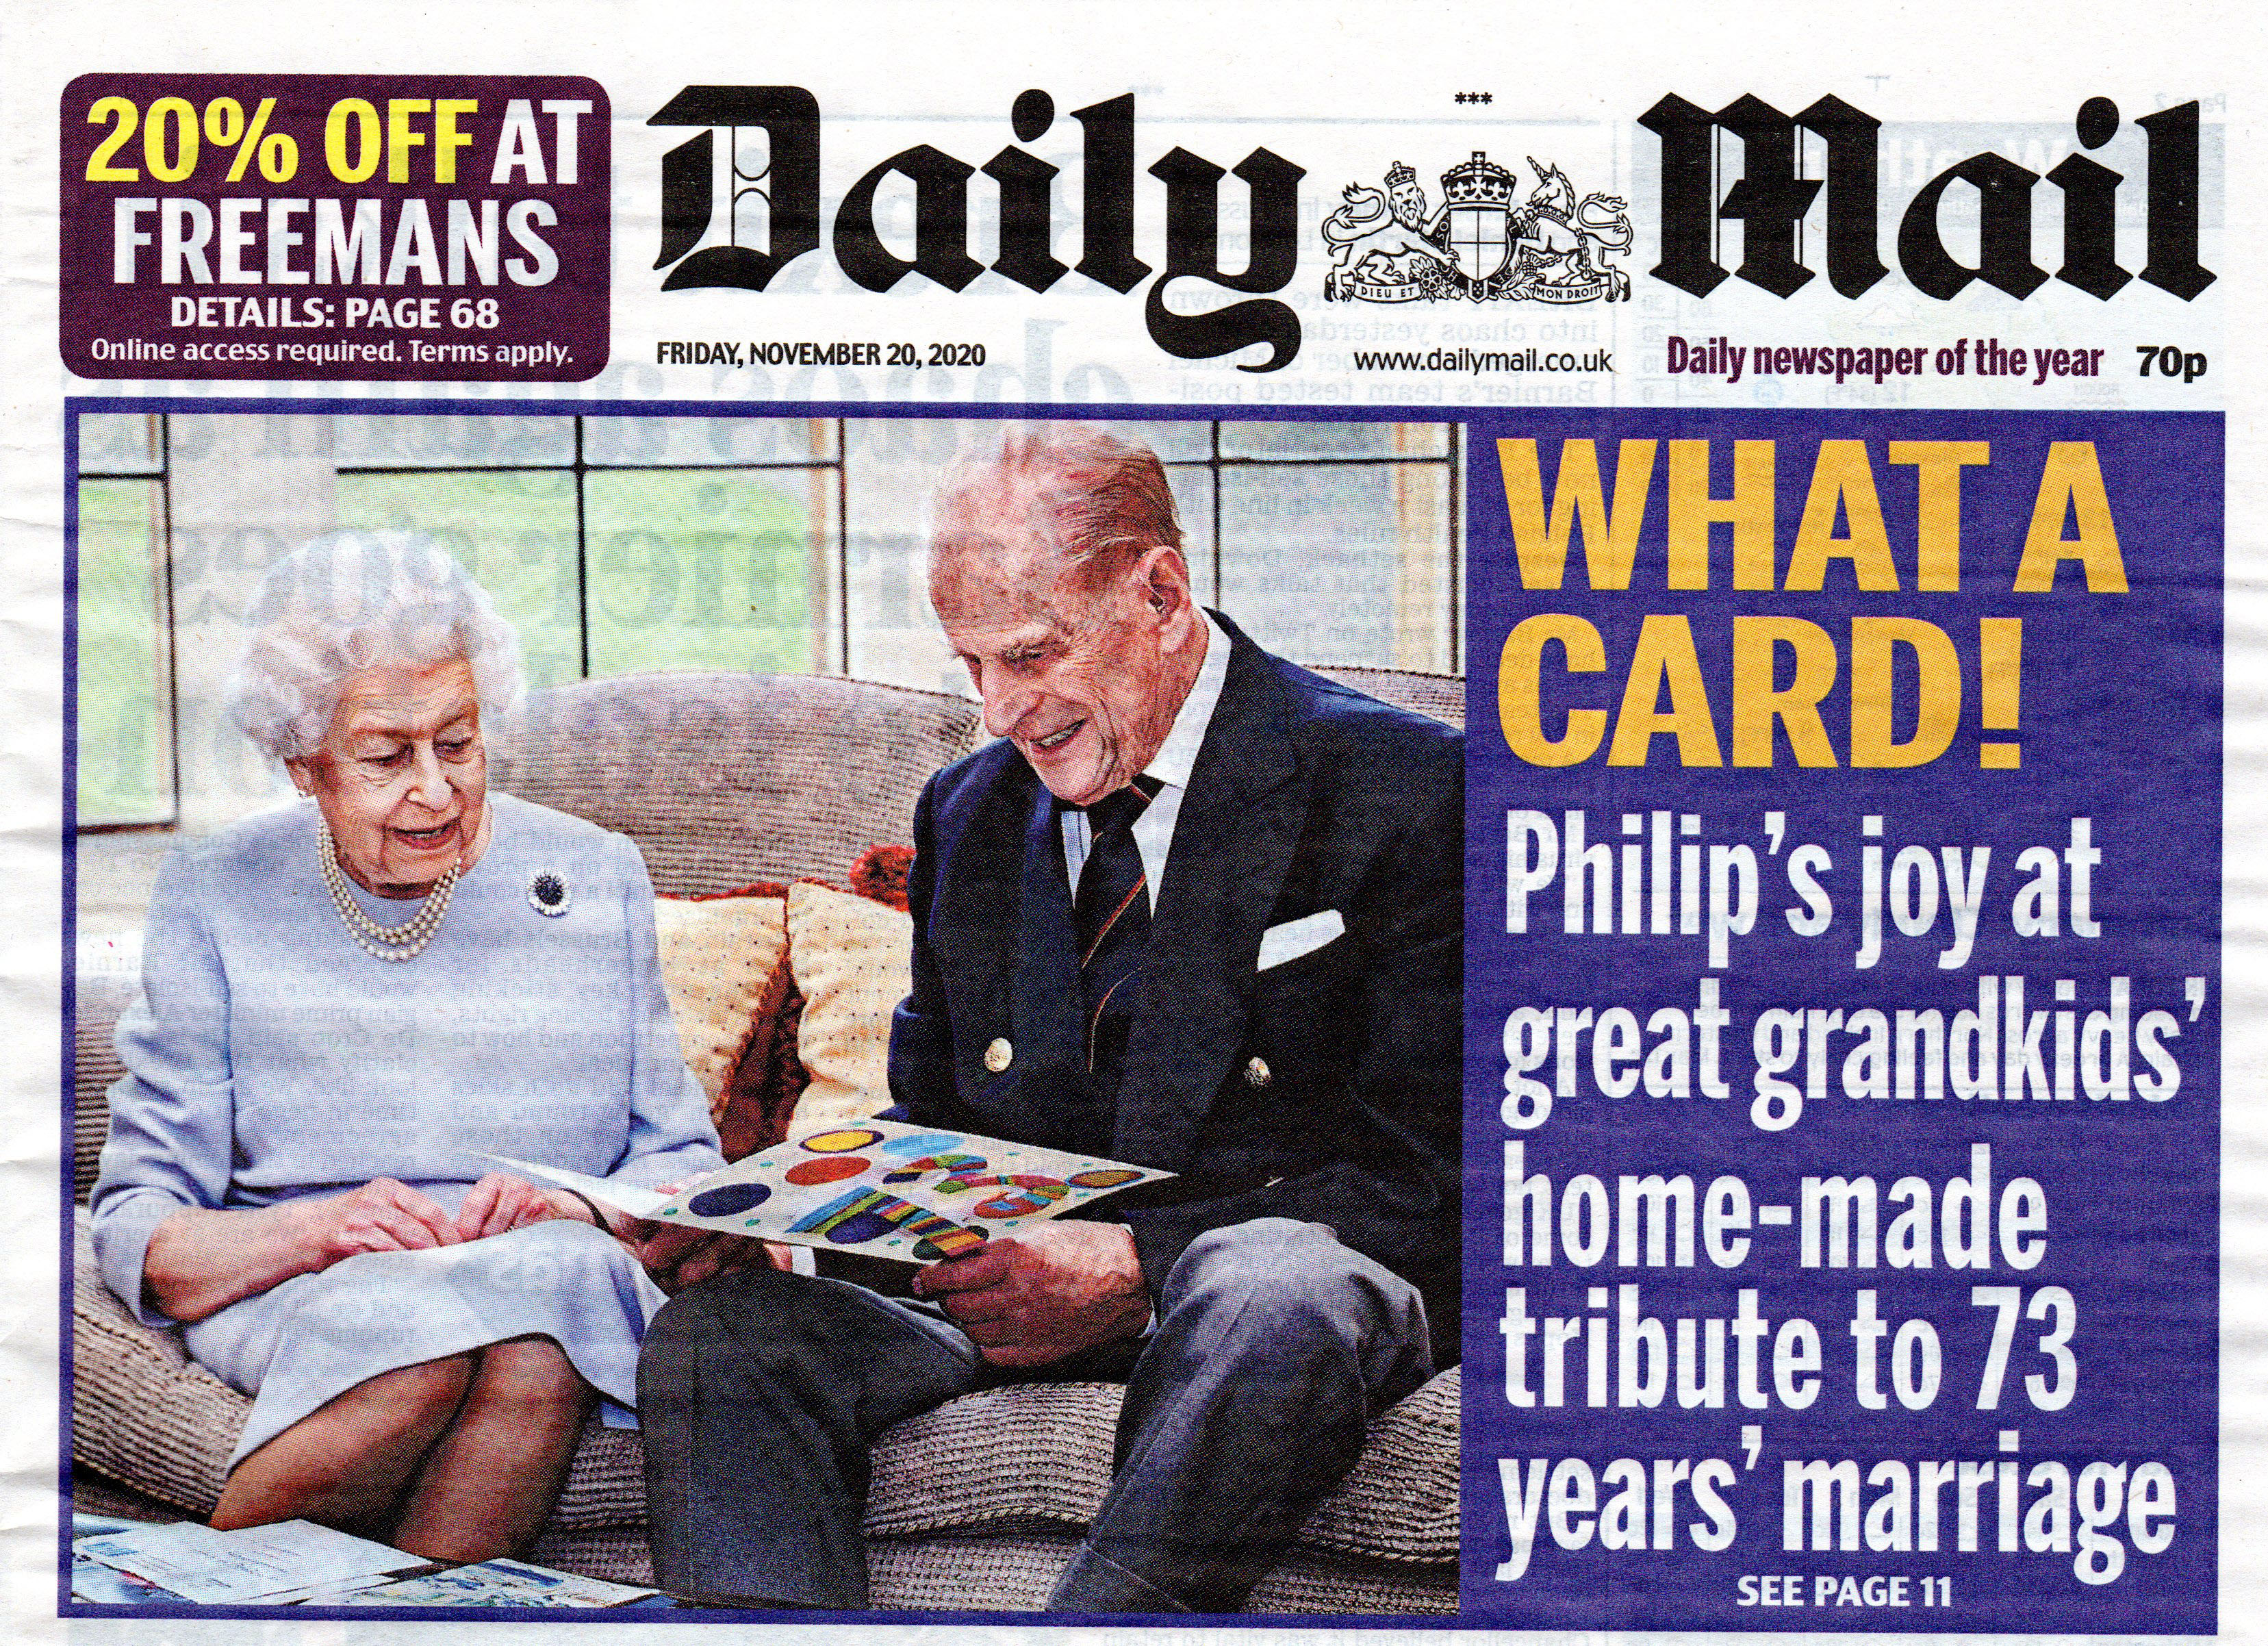 Above: The Daily Mail, not only featured the photo on its front cover, but also included a piece about the card inside the newspaper.